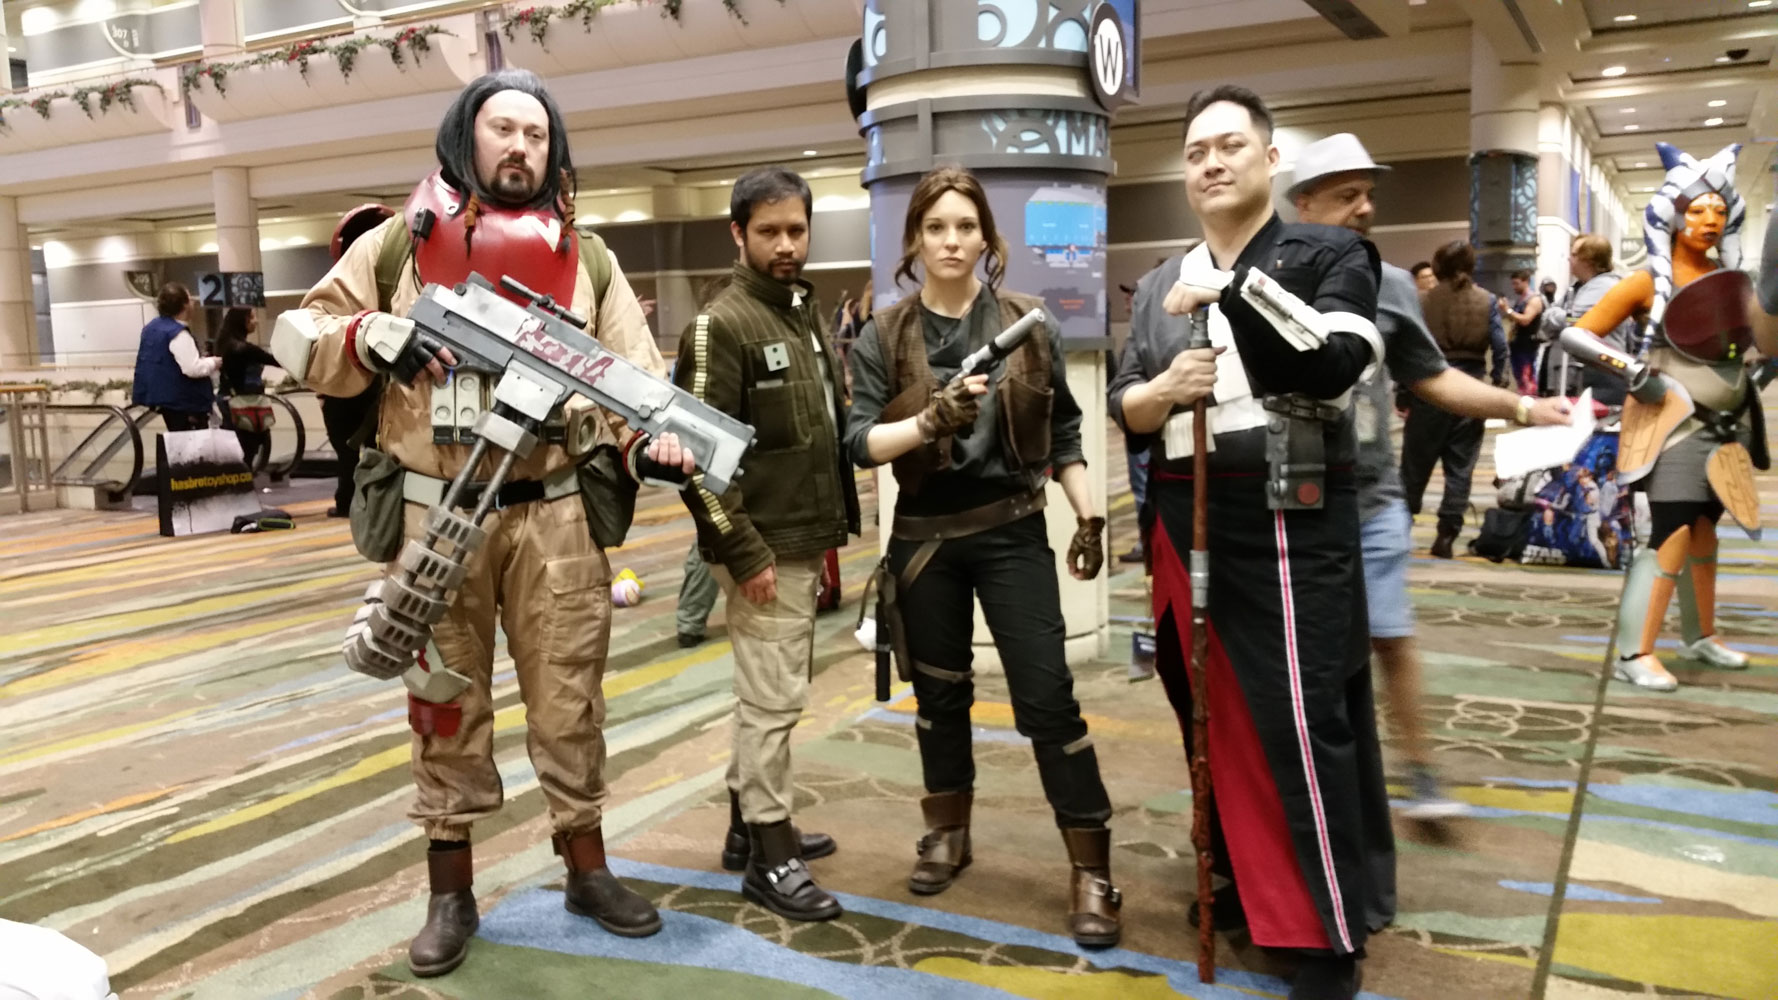 Rogue One cosplay group